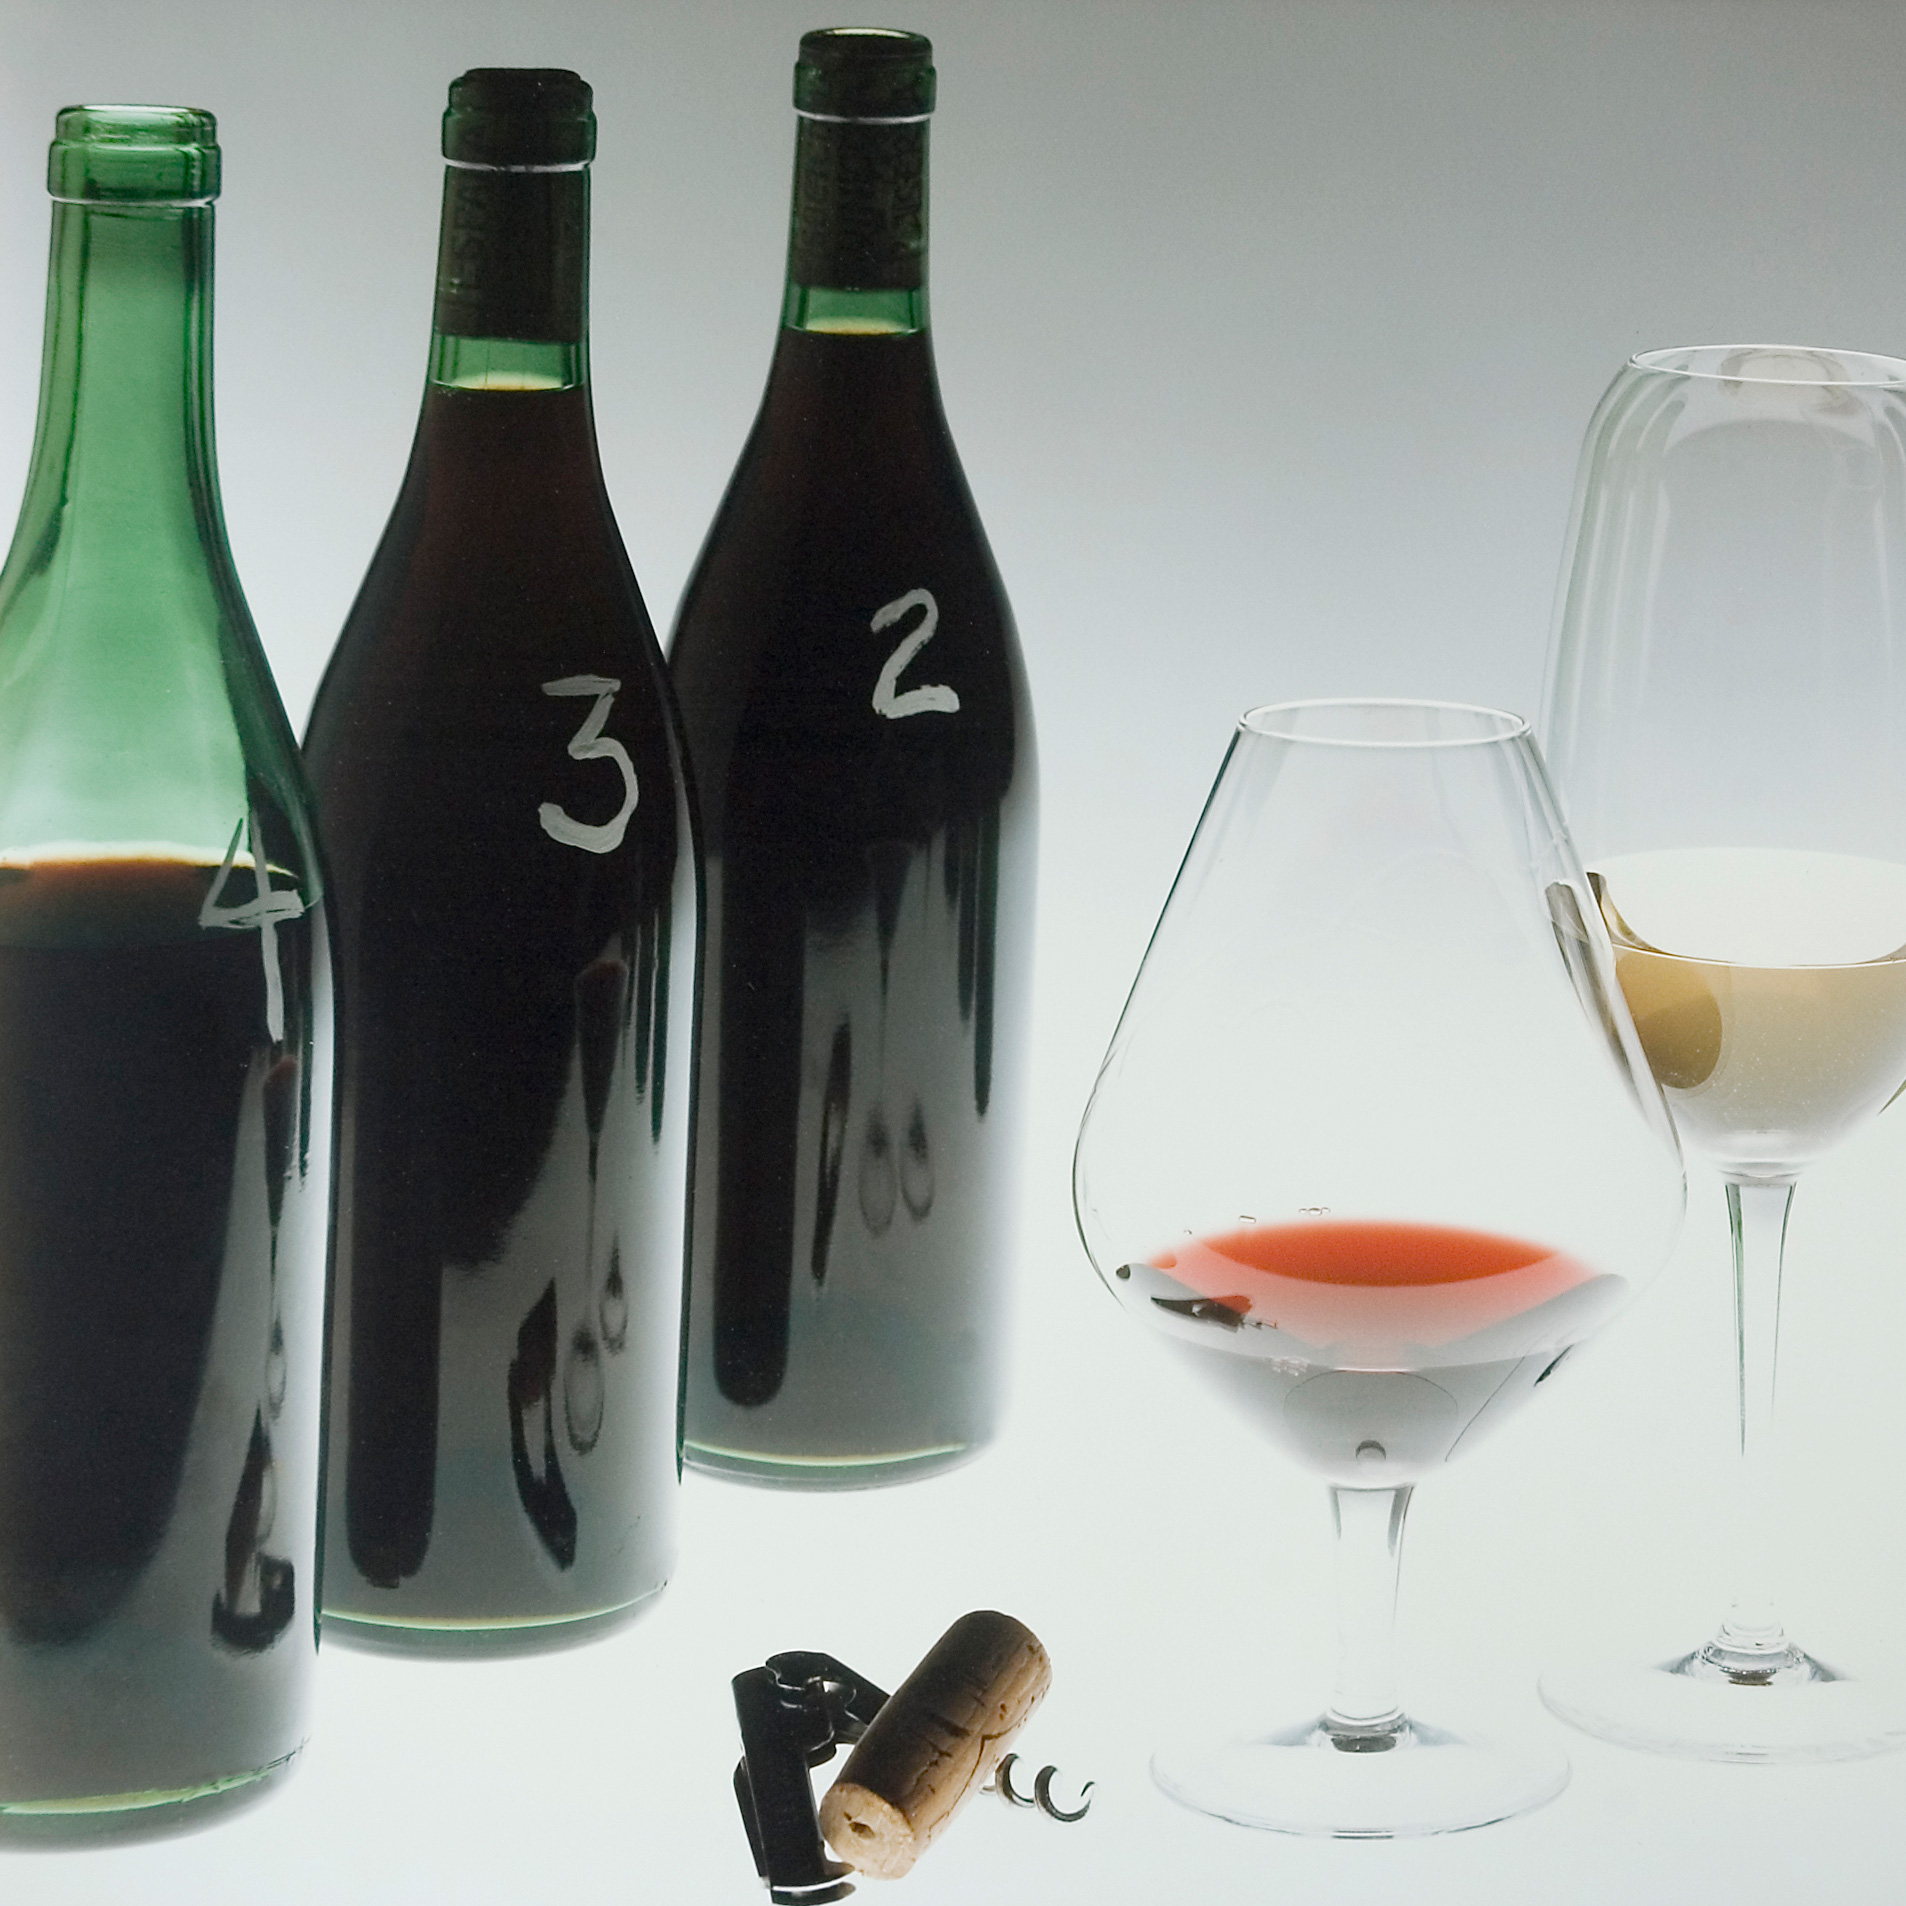 blind-test-wine-fwx